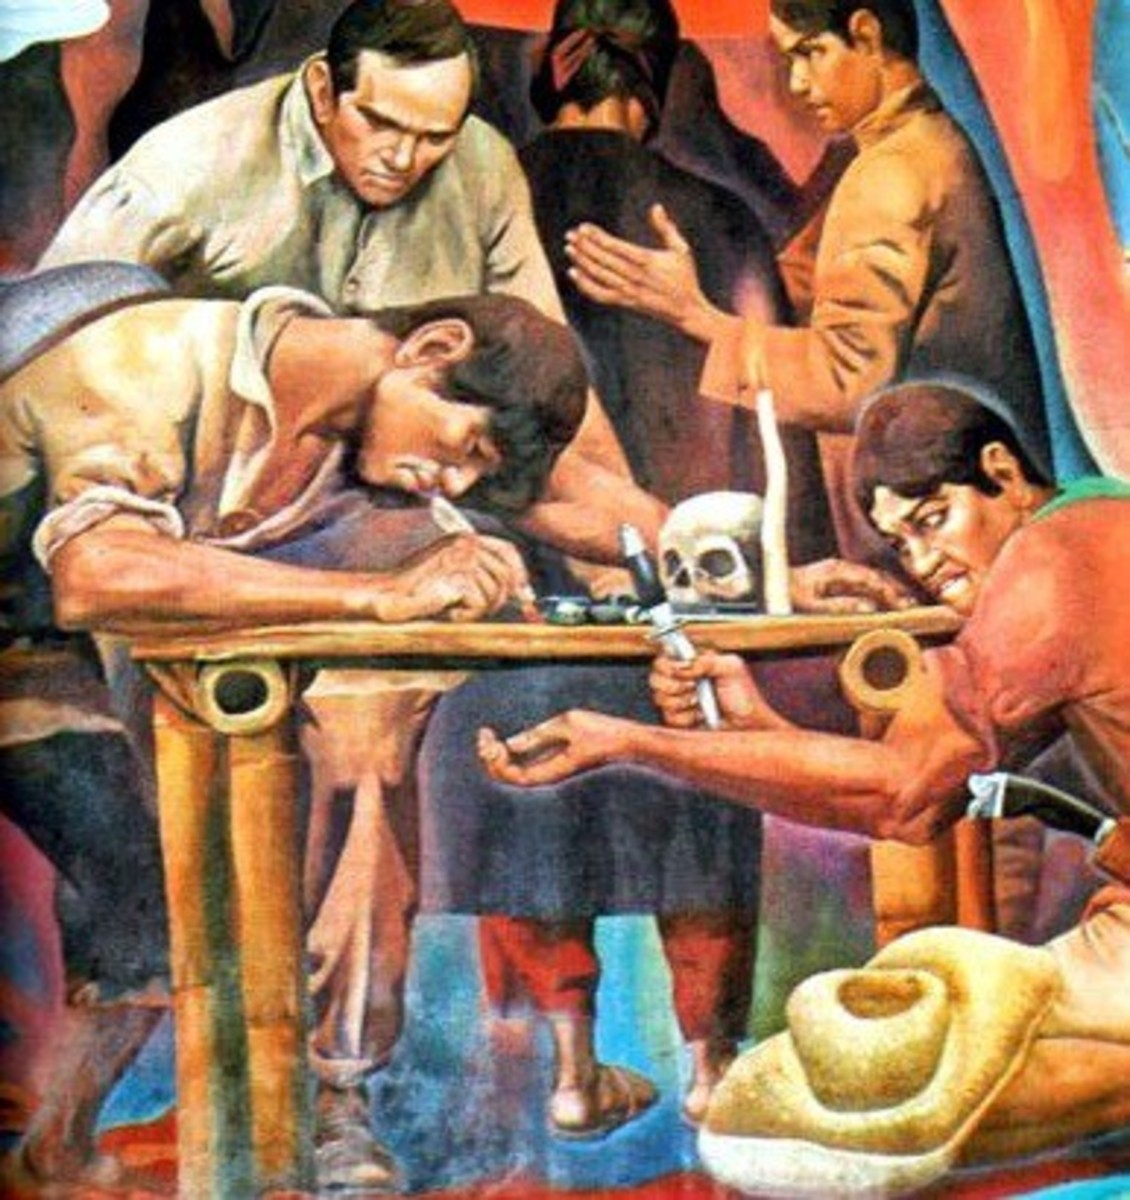 A detail of Carlos Francisco's painting of the Katipunan initiation. Note the human skull on the table.